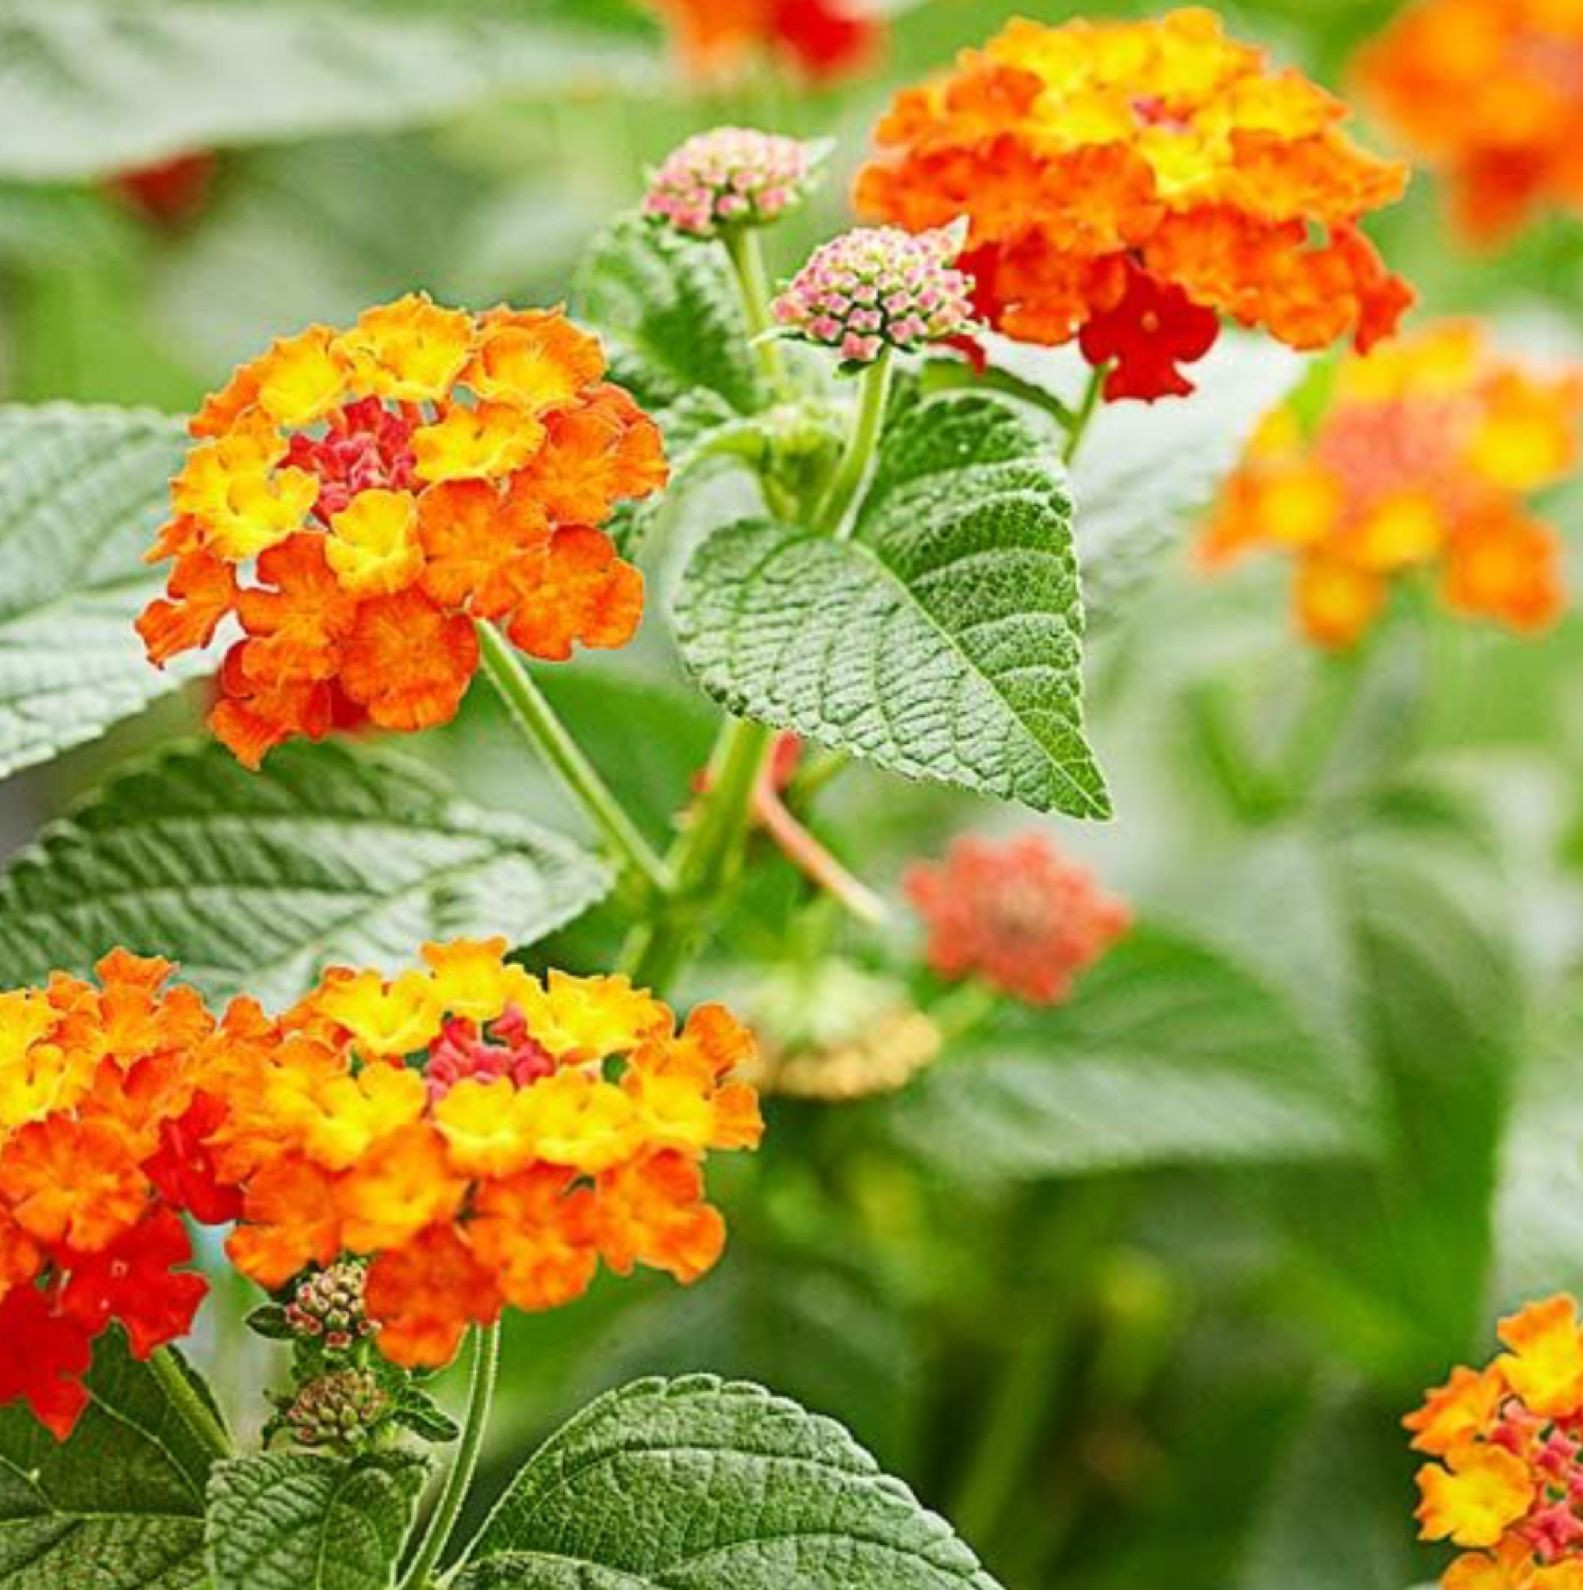 Lantana a butterfly plant Grows wild in Florida